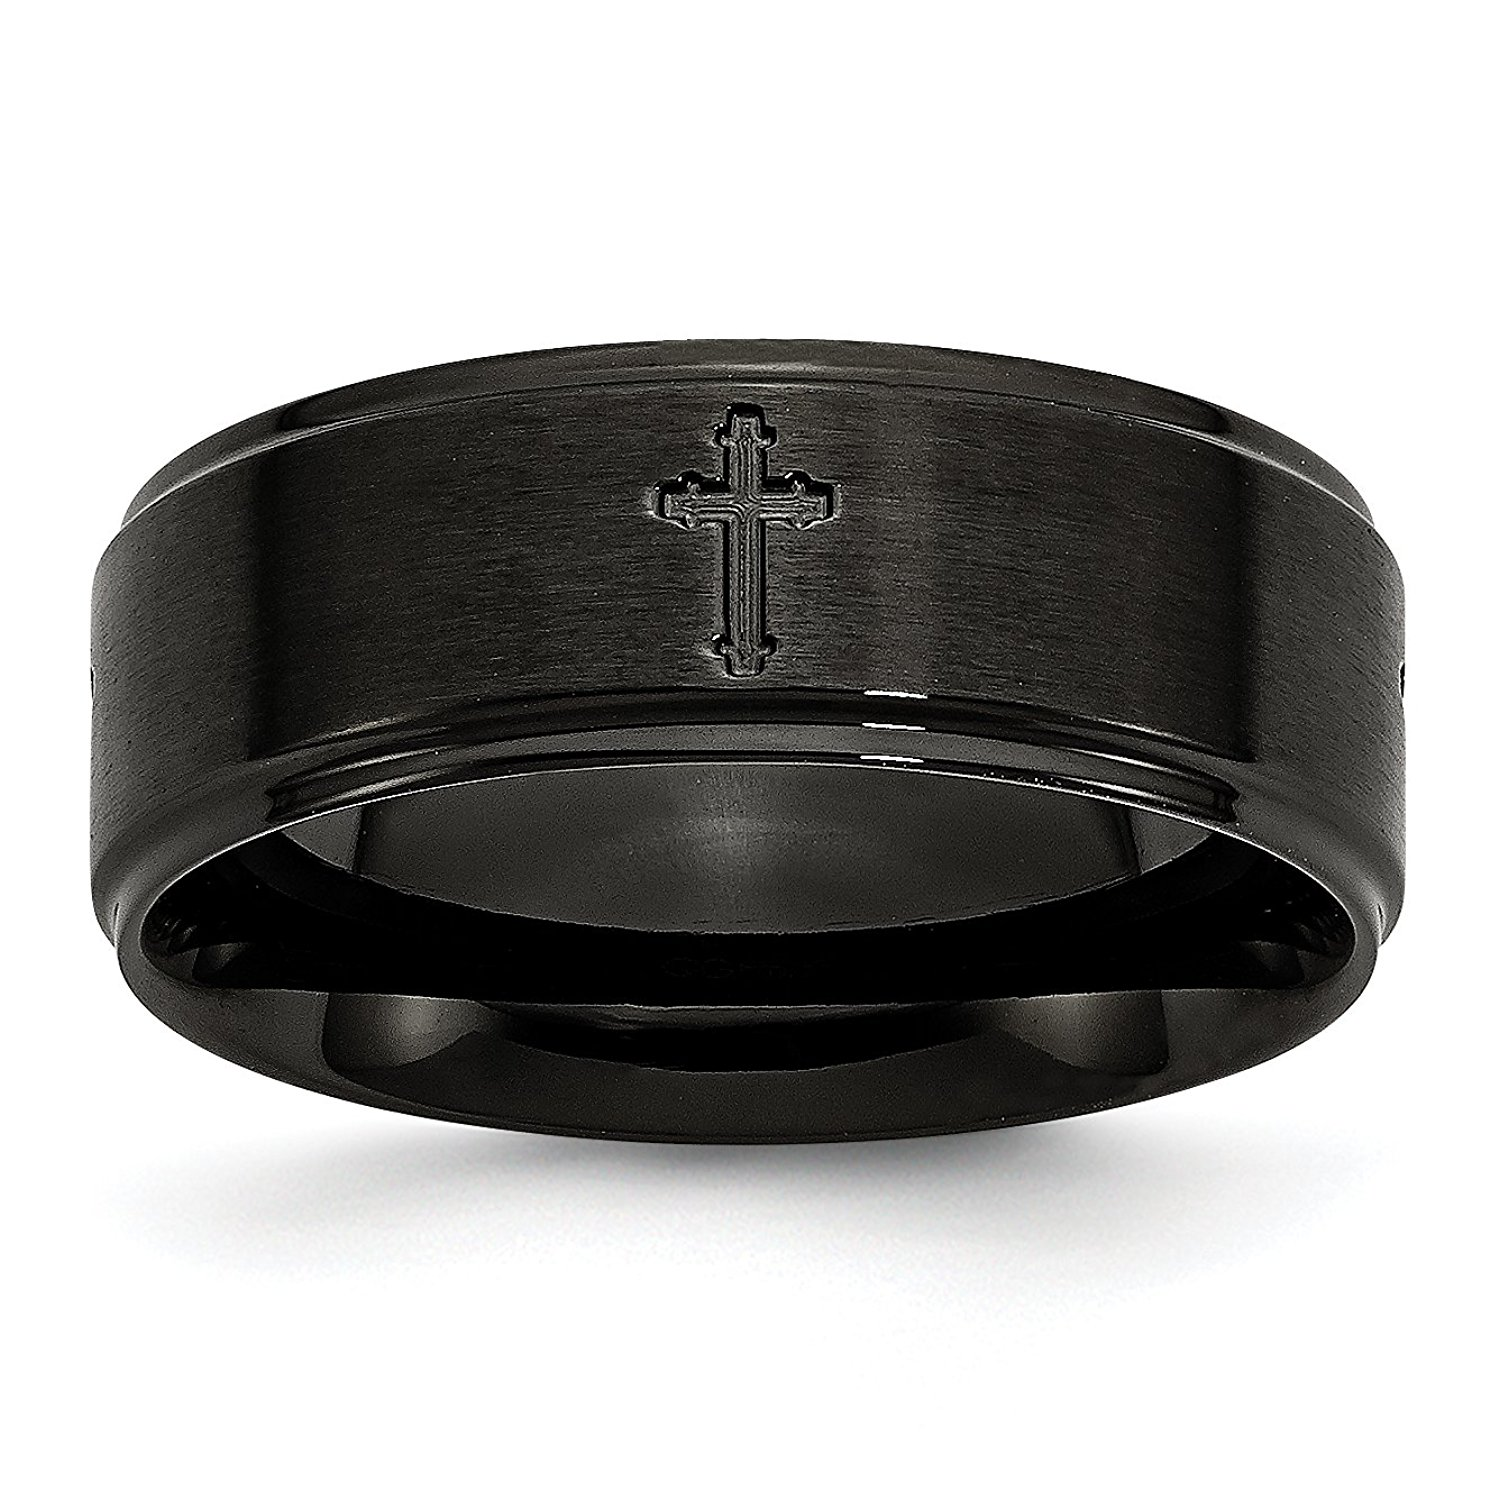 Stainless Steel 8mm Brushed/Polished Cross Cut-Out Black IP-plated Band SR335-11.5<BR>Engravable | Stainless Steel | Cut-out | Brushed | Flat Band | Cross | IP black-plated | Ridged edge